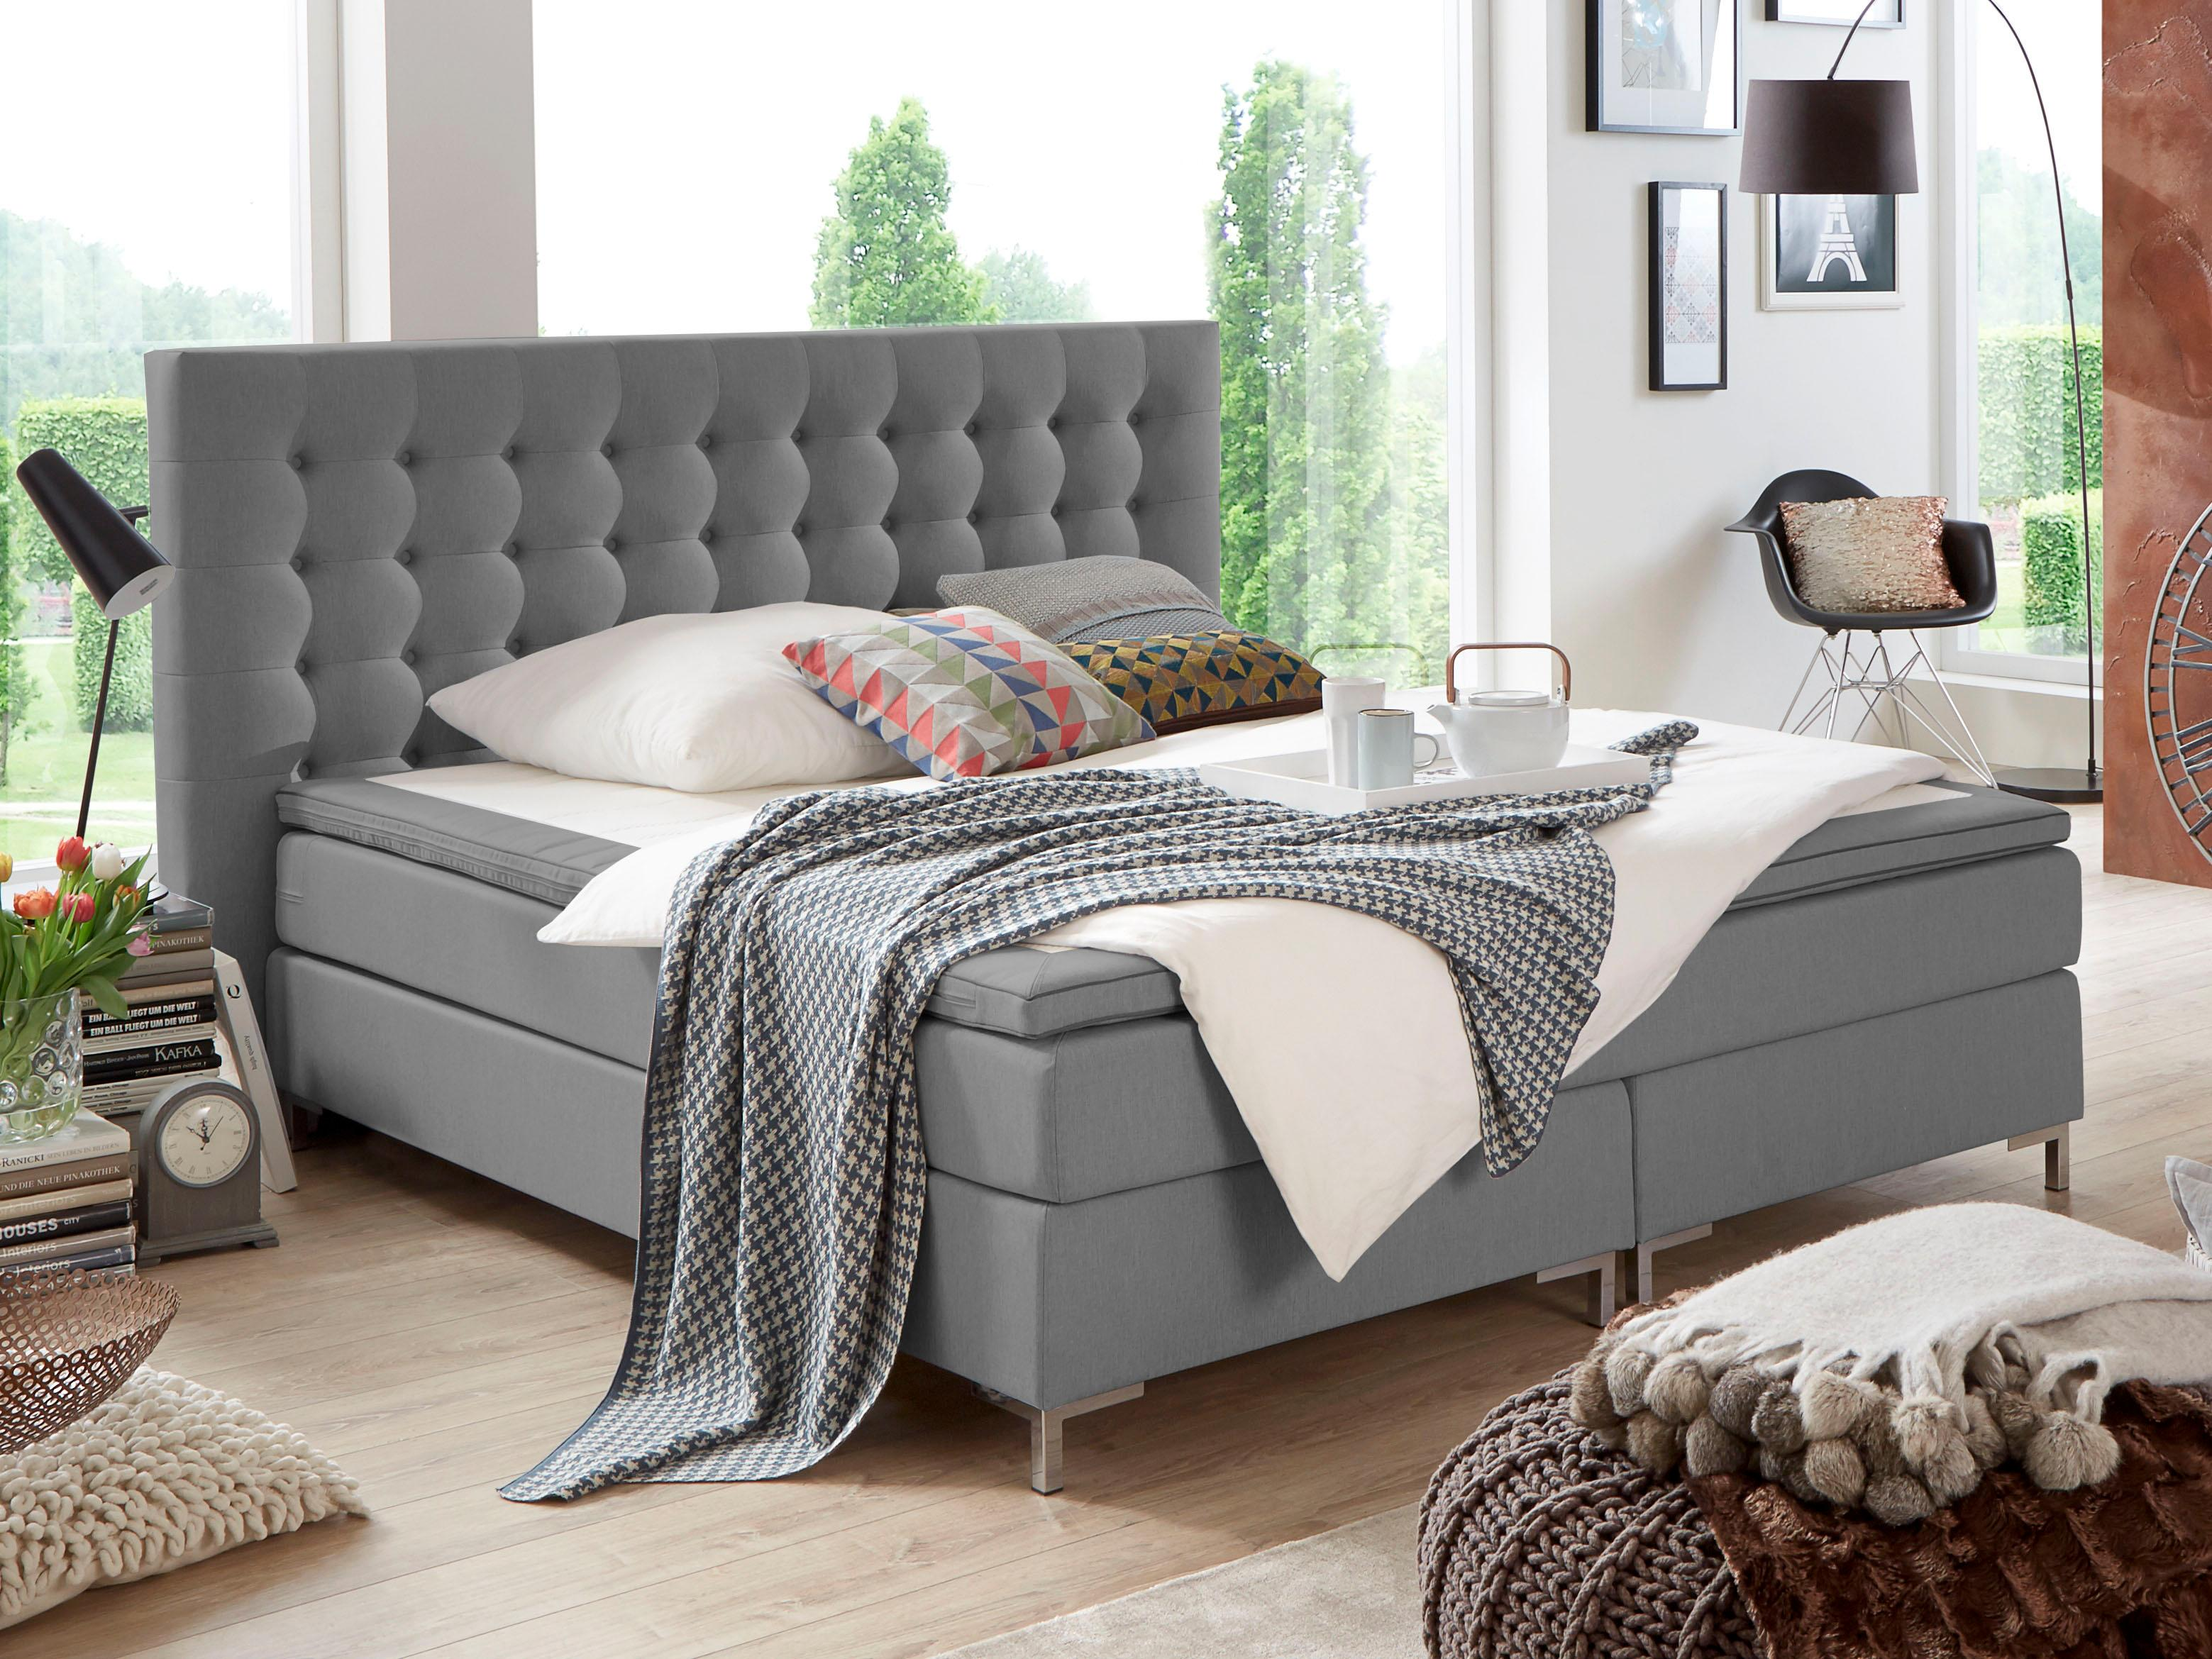 Image of ATLANTIC home collection Boxspringbett